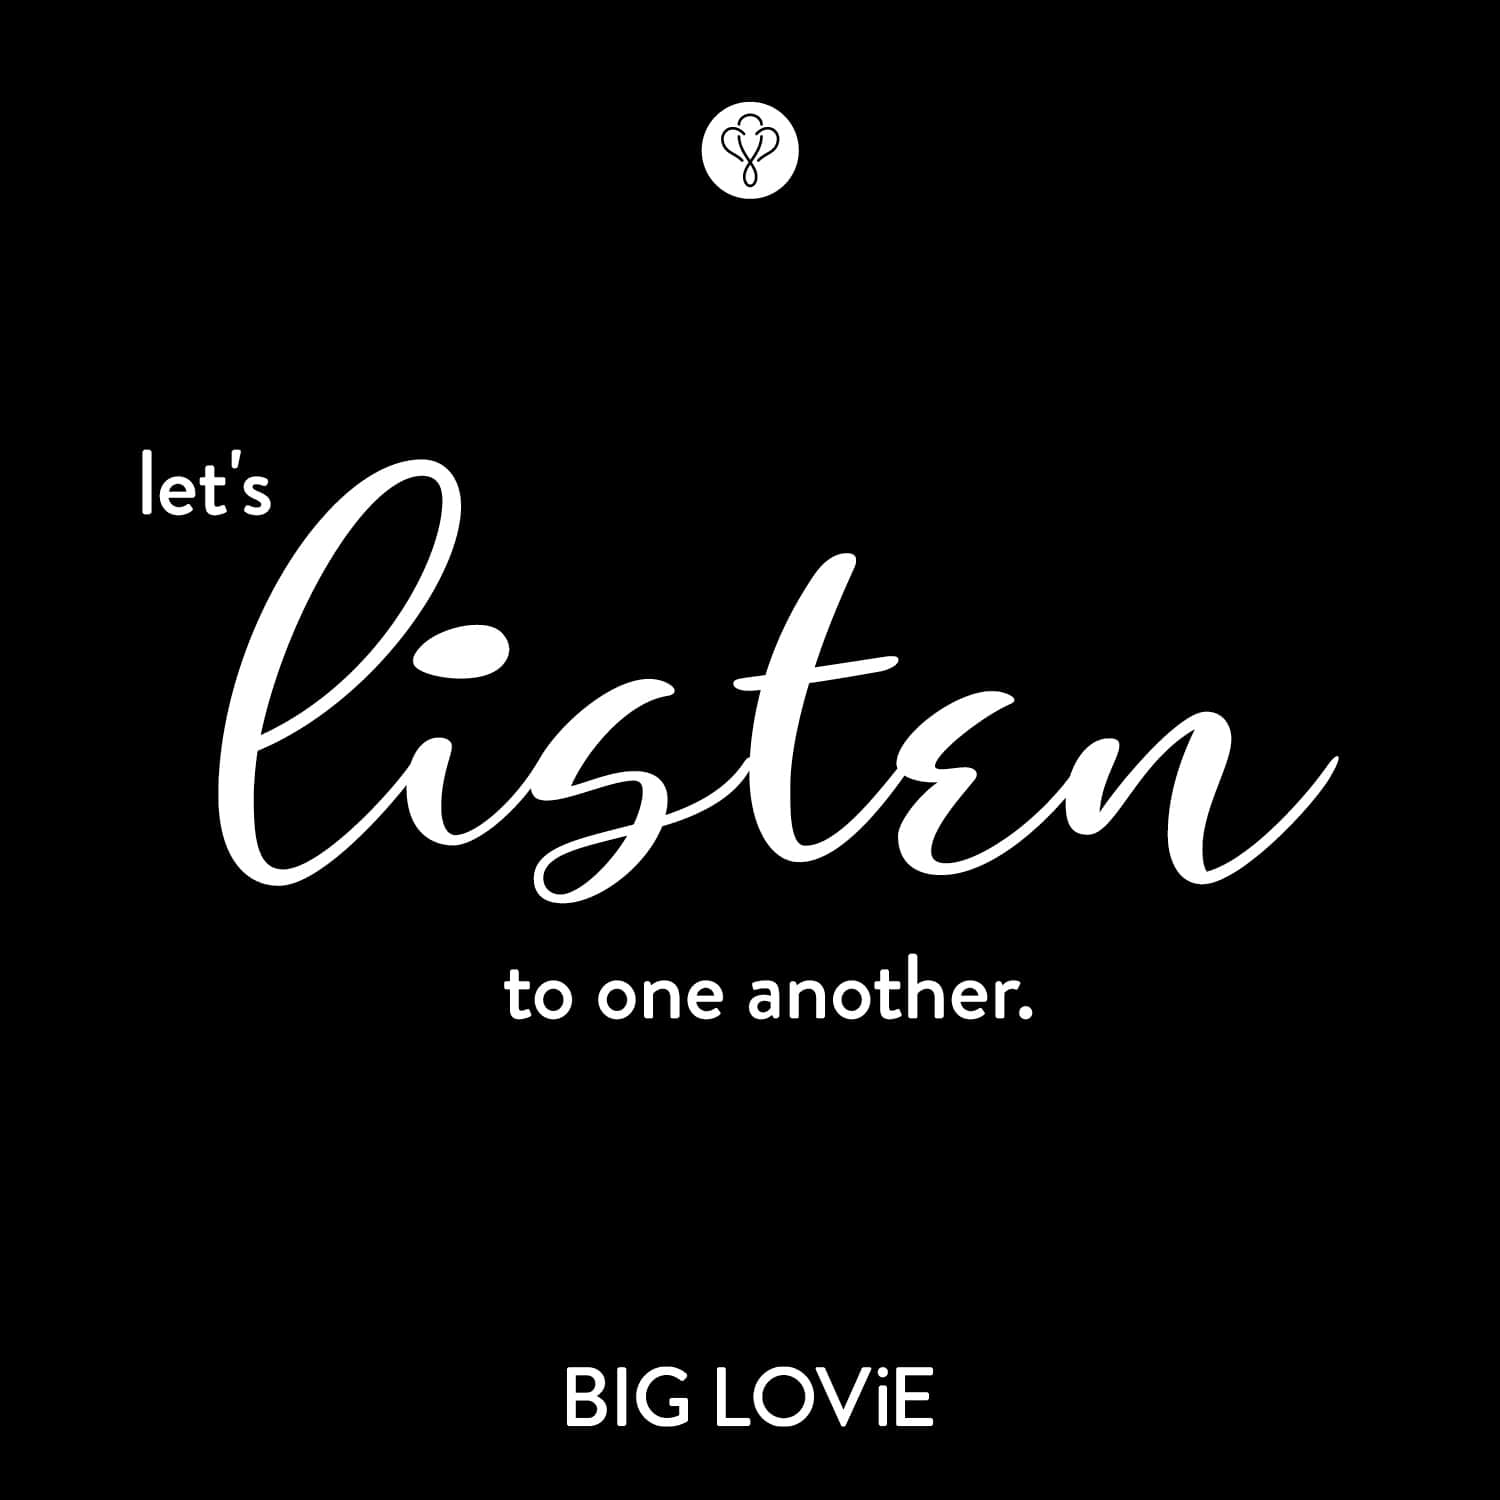 LET'S LISTEN TO ONE ANOTHER